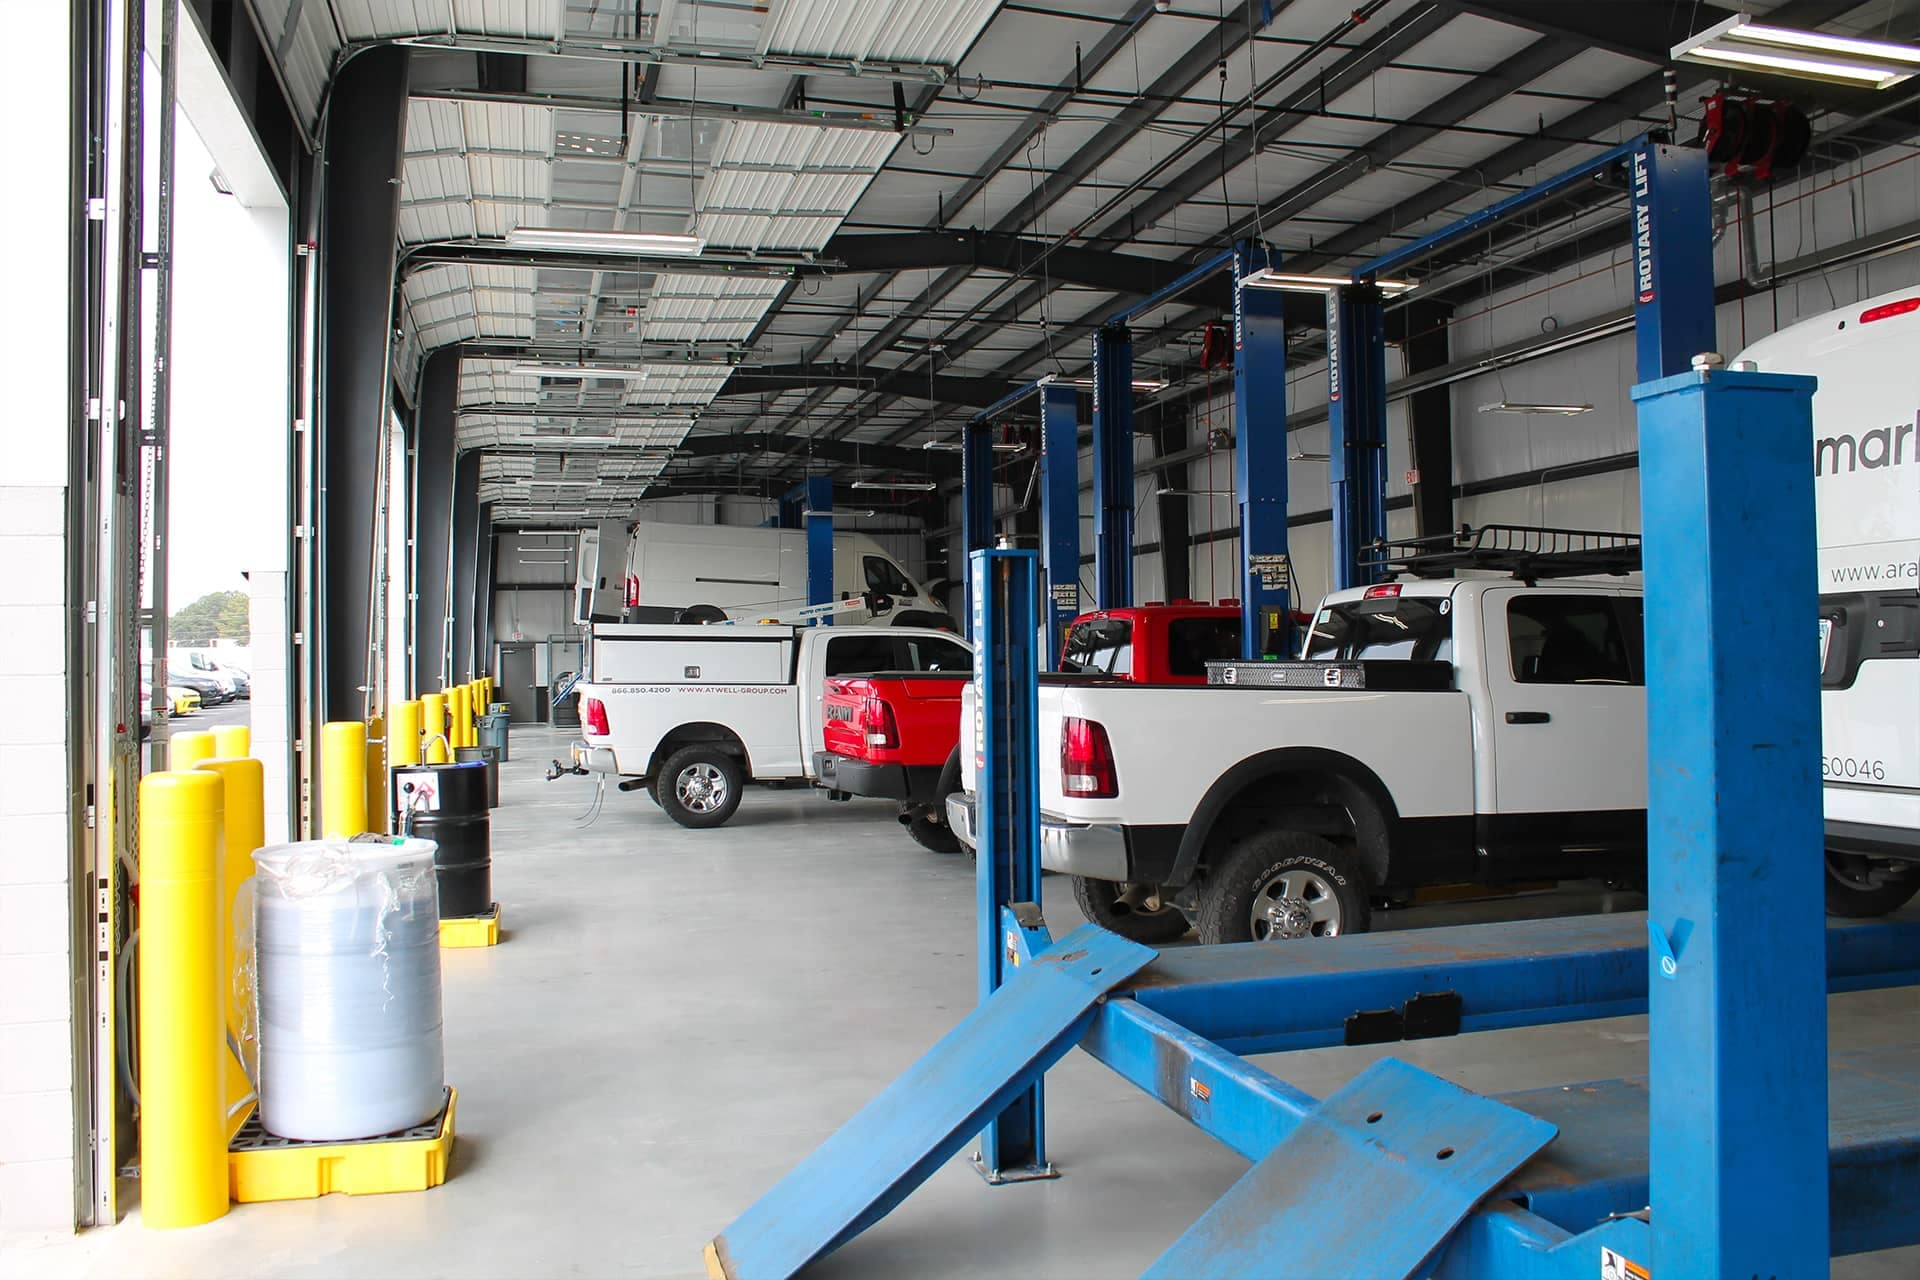 Commercial Truck Service Bays located at Ed Voyles Chrysler Dodge Jeep Ram in Marietta, Georgia